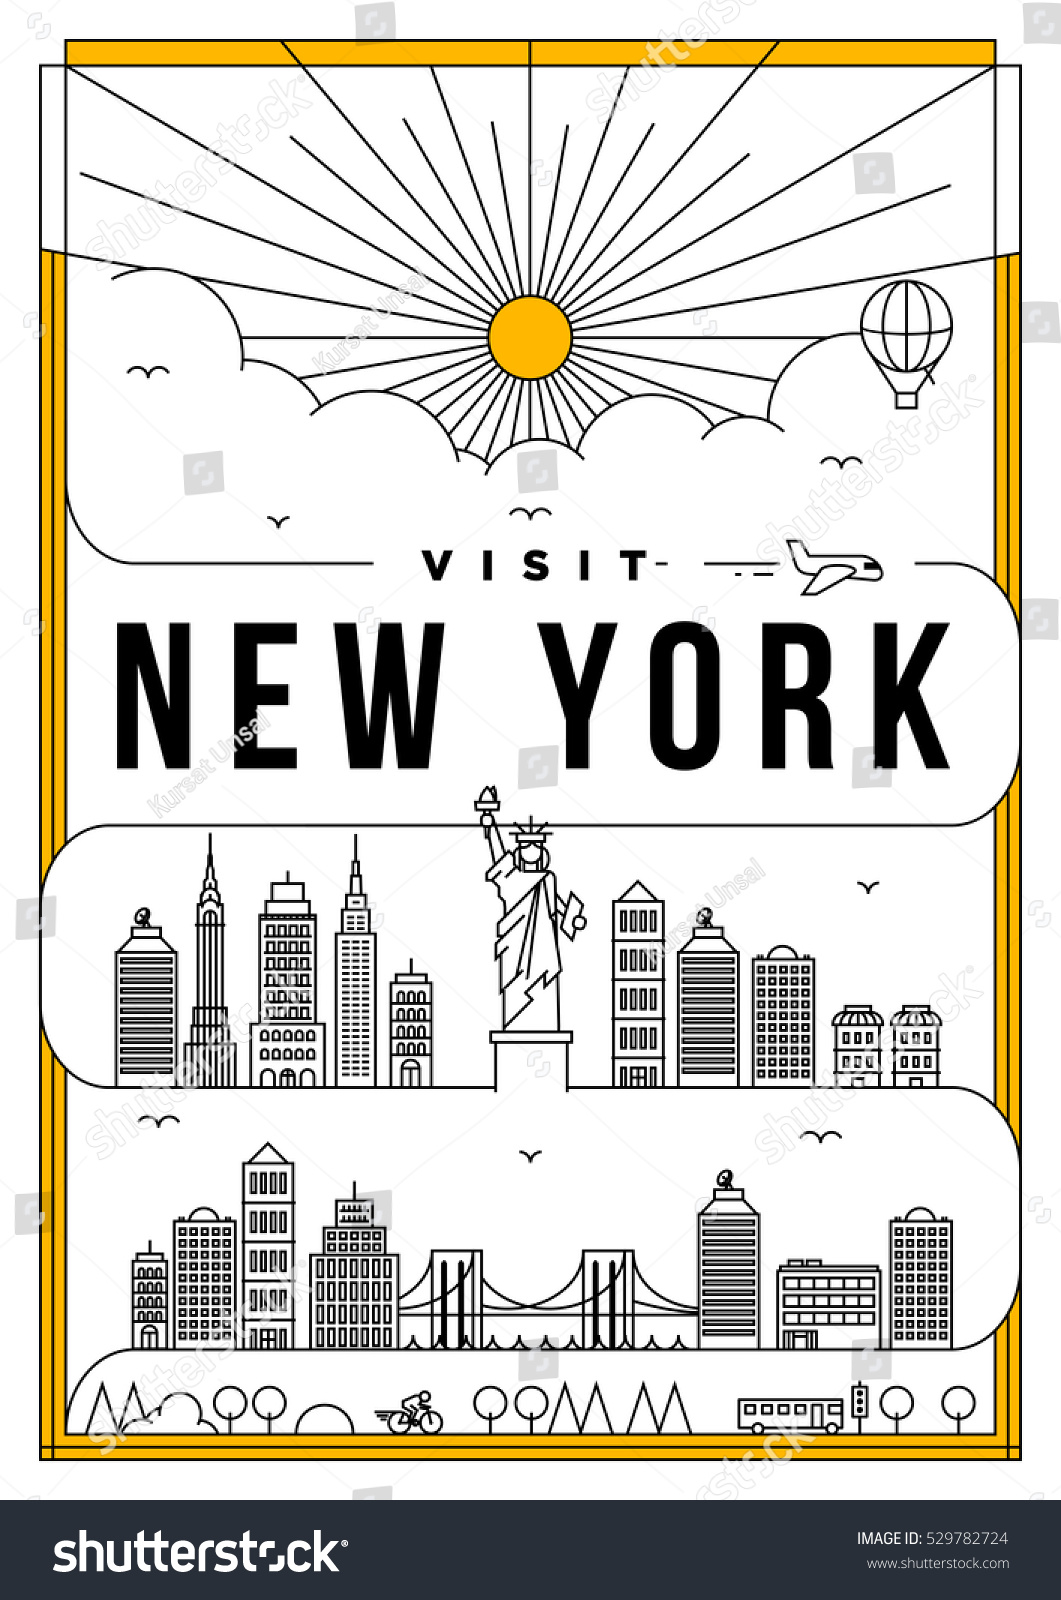 Poster design new york - Linear Travel New York Poster Design